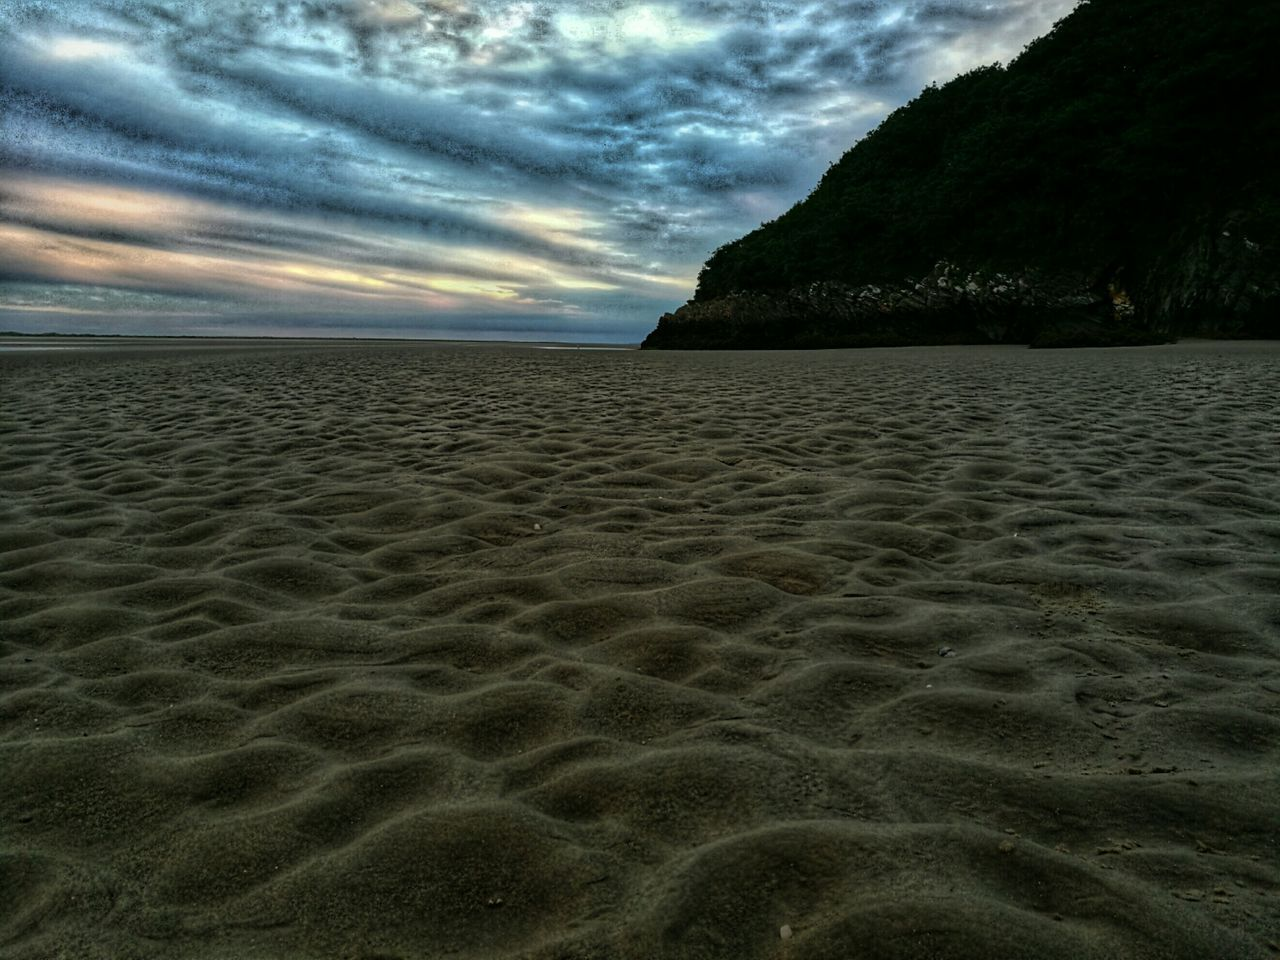 nature, sand, sky, tranquility, beach, cloud - sky, beauty in nature, sea, scenics, no people, tranquil scene, outdoors, water, day